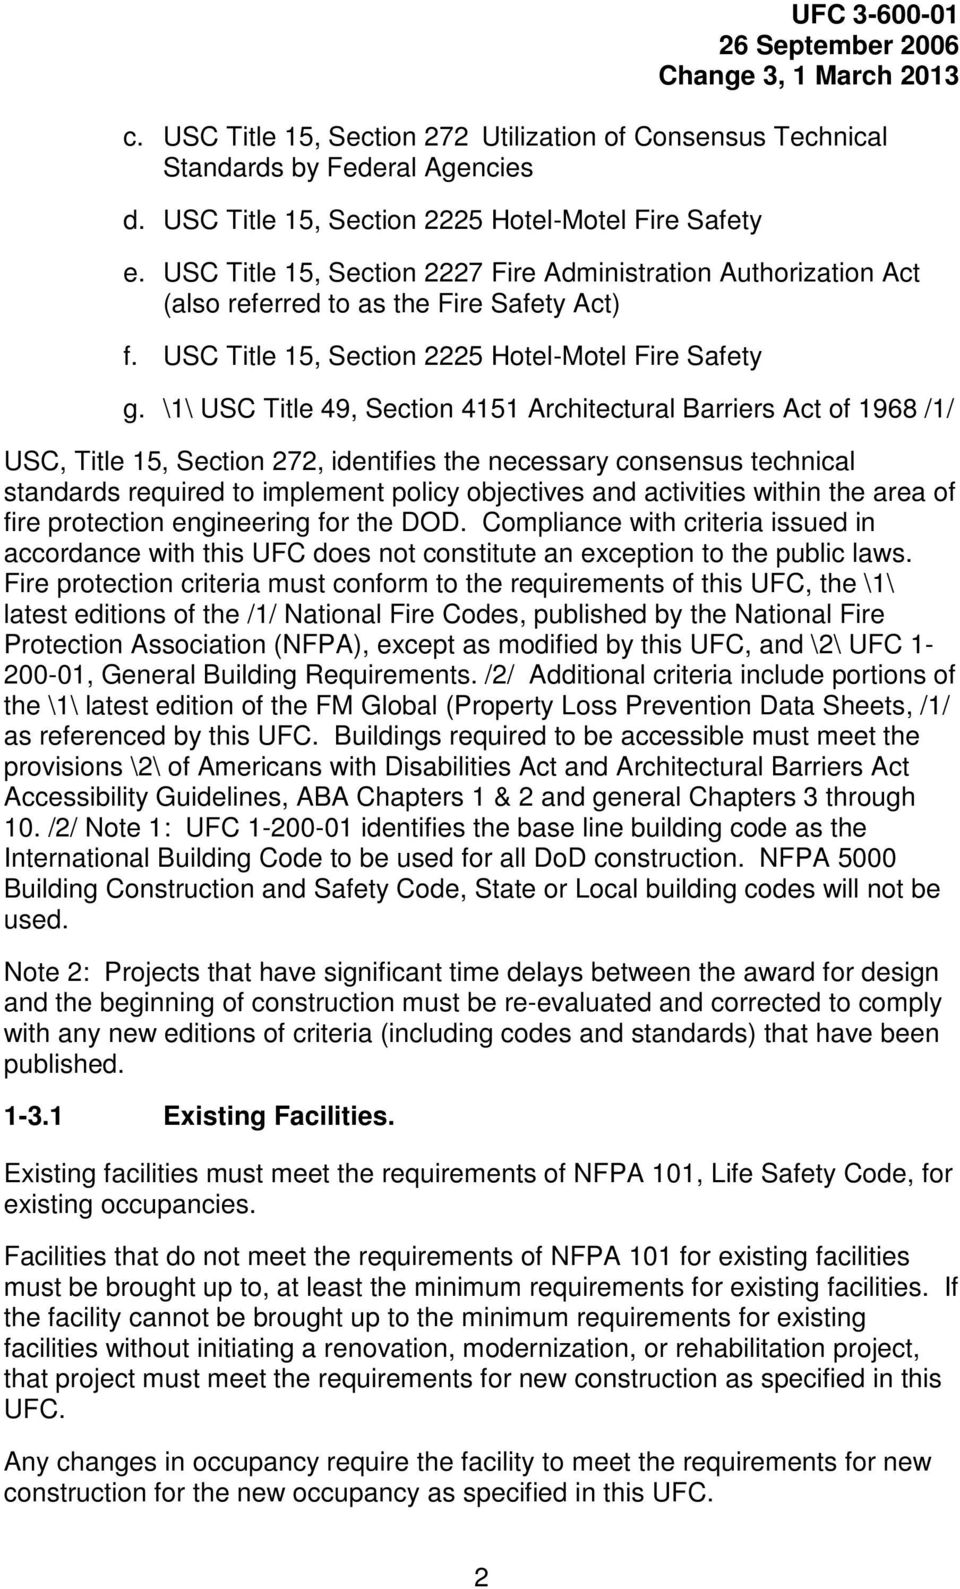 \1\ USC Title 49, Section 4151 Architectural Barriers Act of 1968 /1/ USC, Title 15, Section 272, identifies the necessary consensus technical standards required to implement policy objectives and